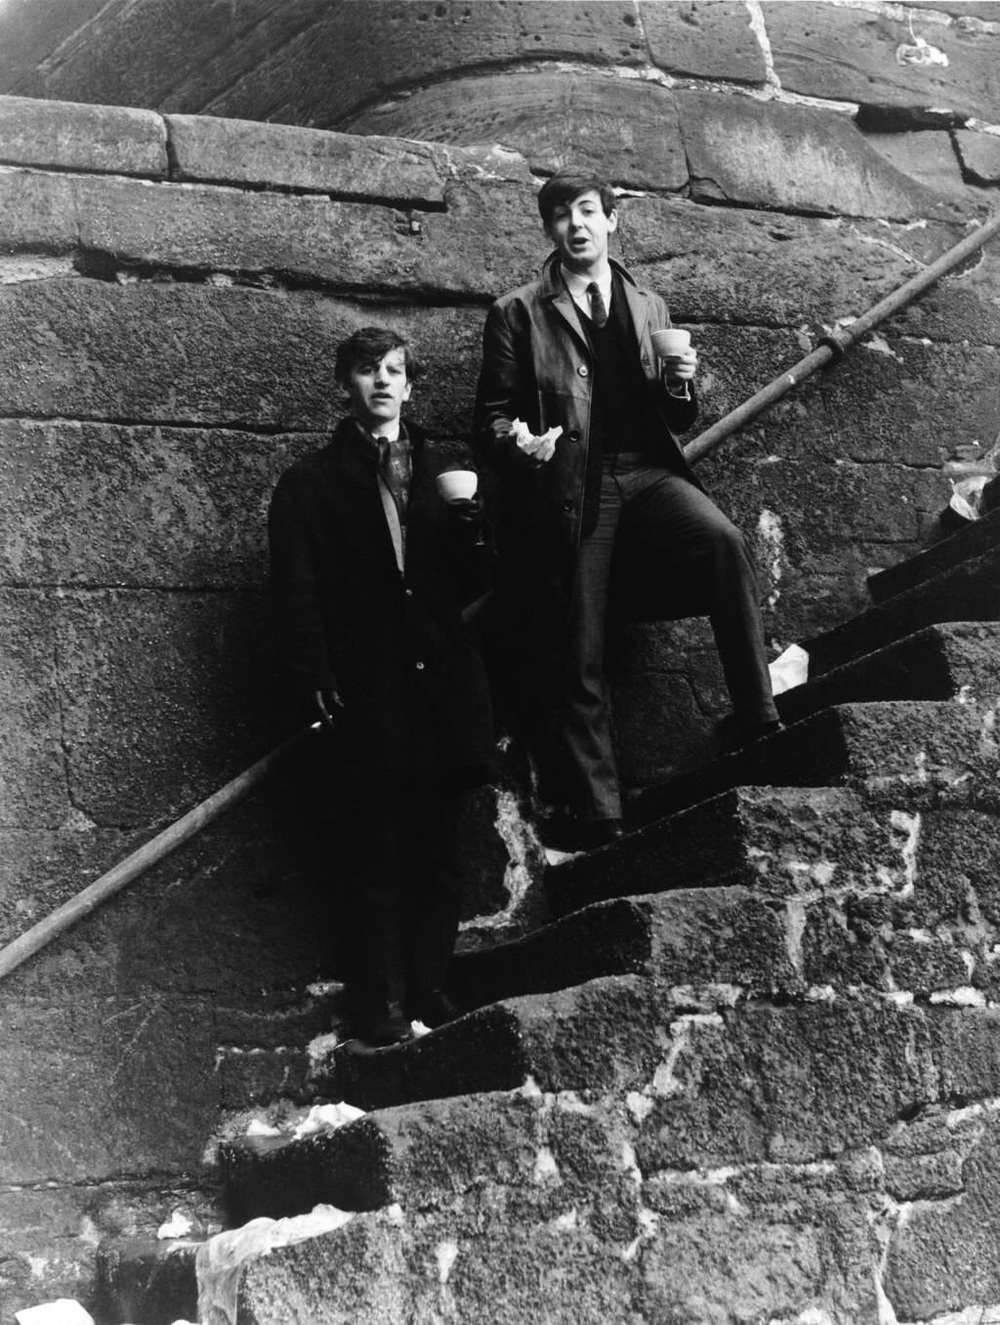 Paul McCartney and Ringo Starr at Pier Head, Liverpool, 1963.